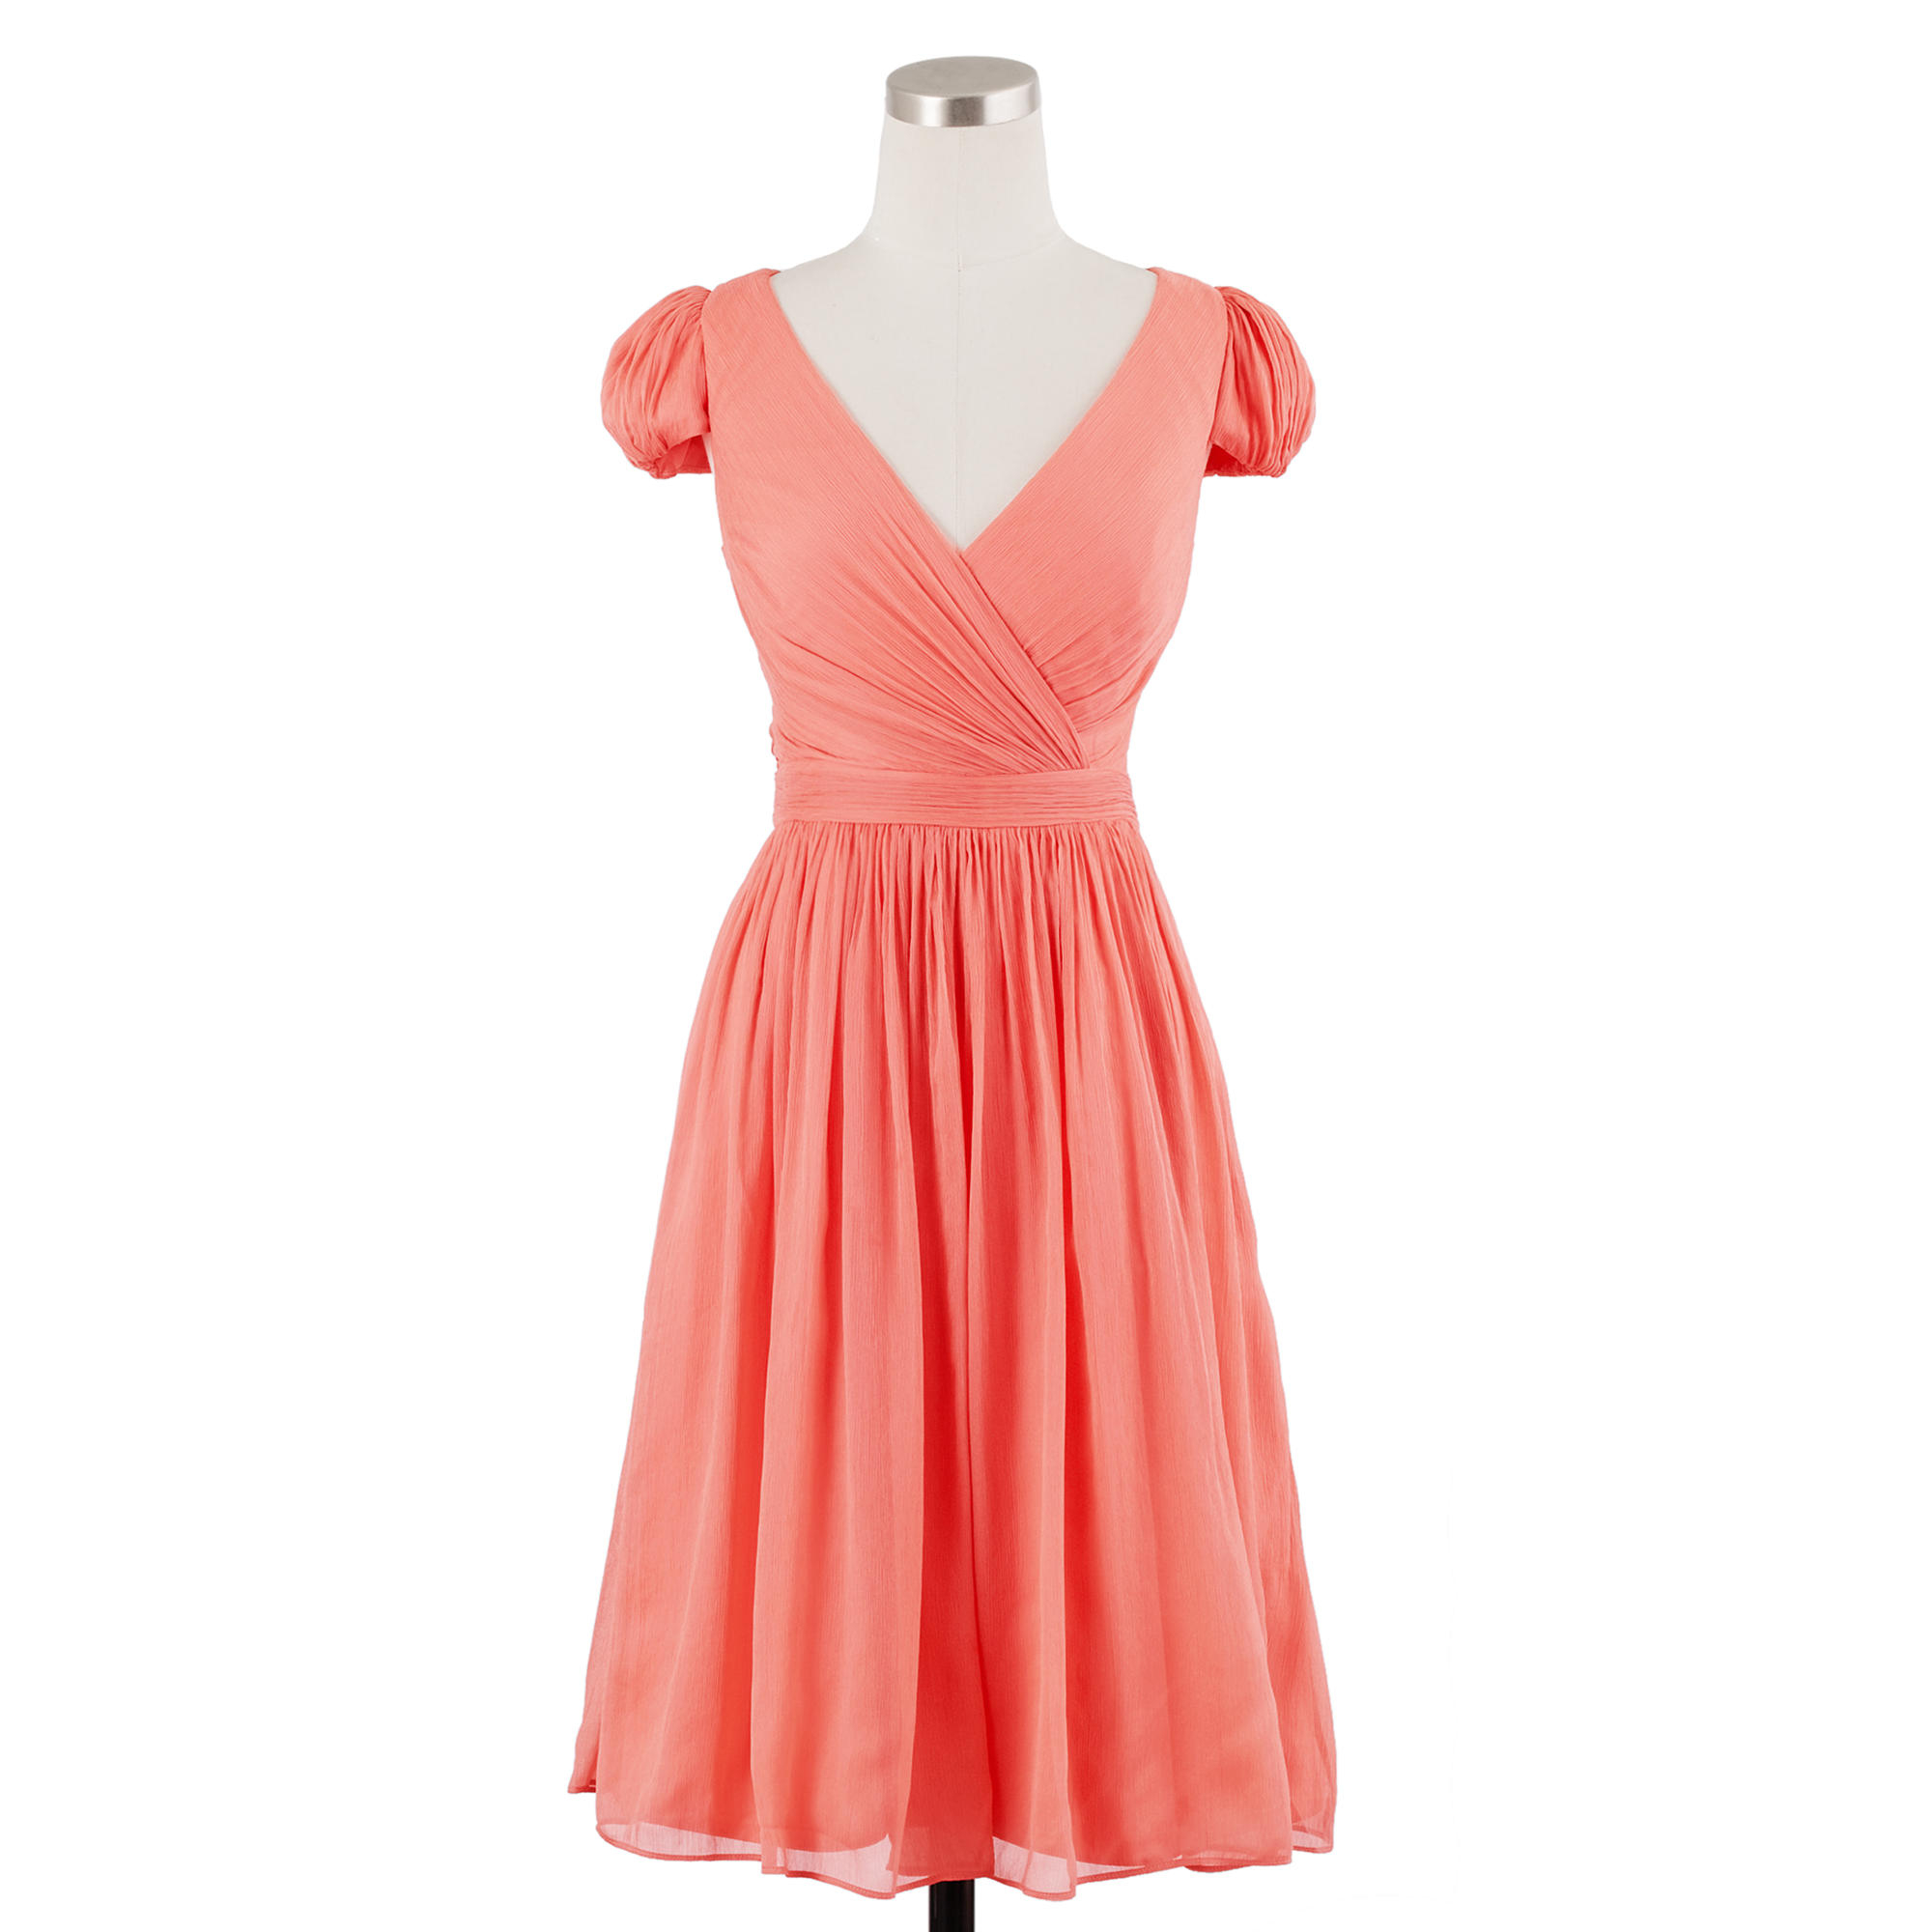 9c1836e93d Lyst - J.Crew Petite Mirabelle Dress In Silk Chiffon in Pink